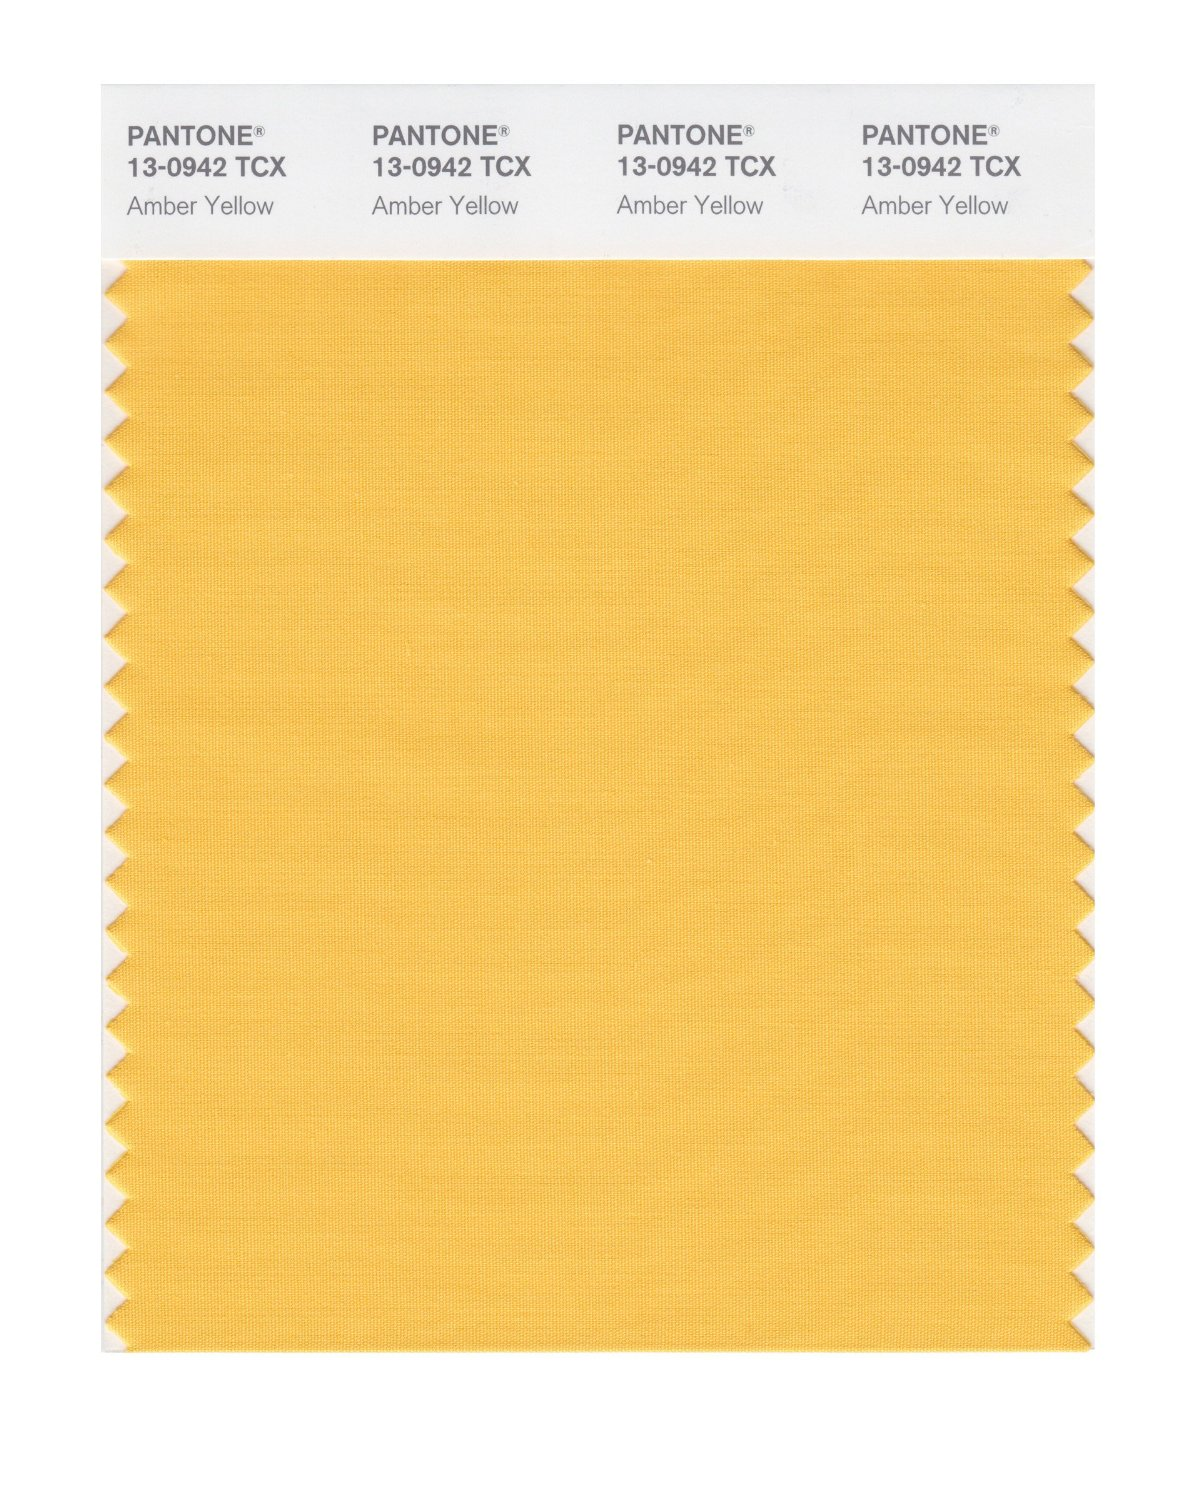 Pantone Smart Swatch 13-0942 Amber Yellow